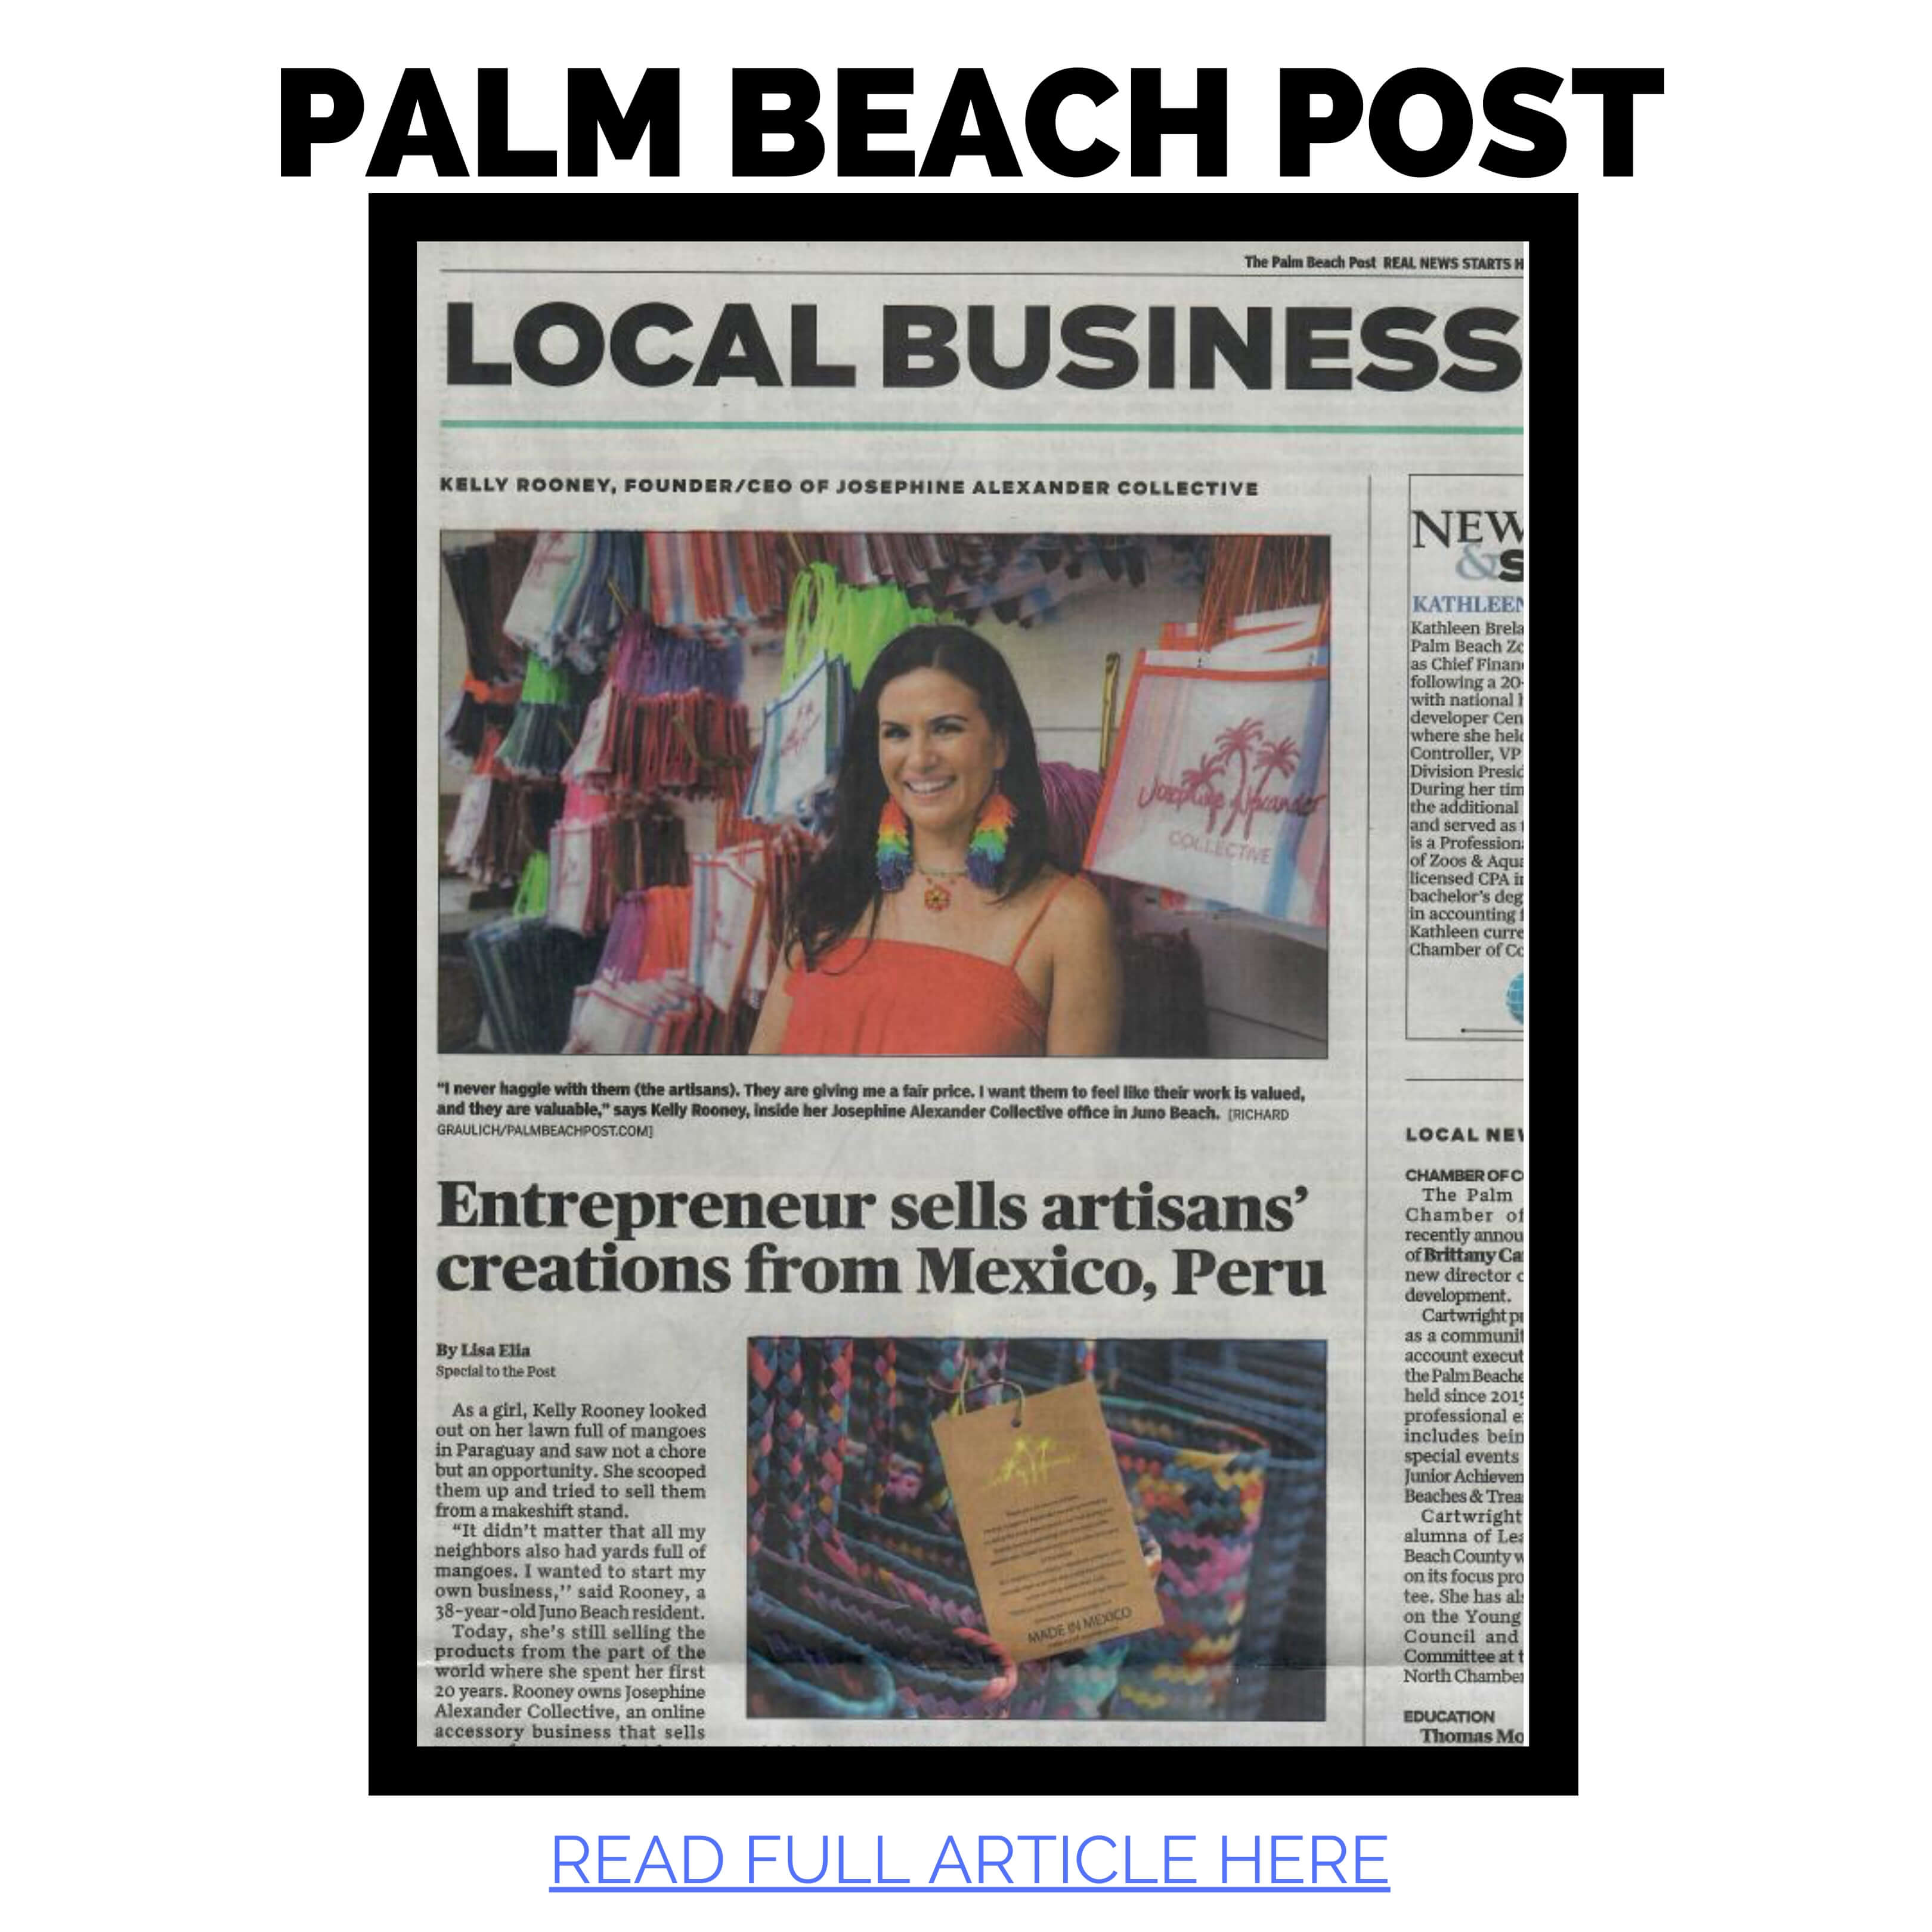 JAC featured in Palm Beach Post